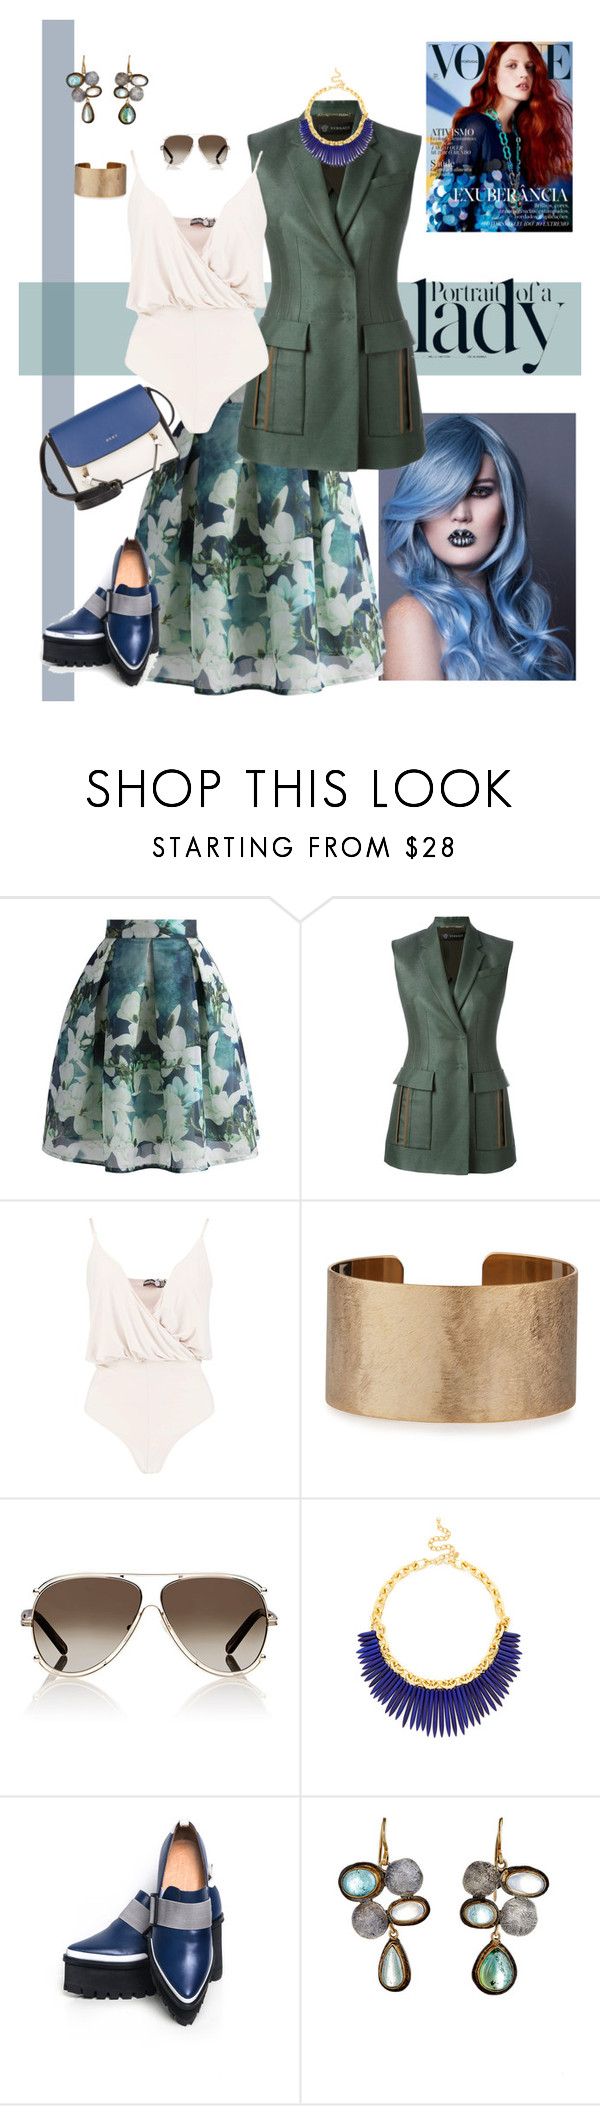 """Ladylike"" by scope-stilettos ❤ liked on Polyvore featuring Chicwish, Versace, Boohoo, Panacea, Chloé, Kenneth Jay Lane, Jamie Wei Huang, Judy Geib, DKNY and Inez & Vinoodh"